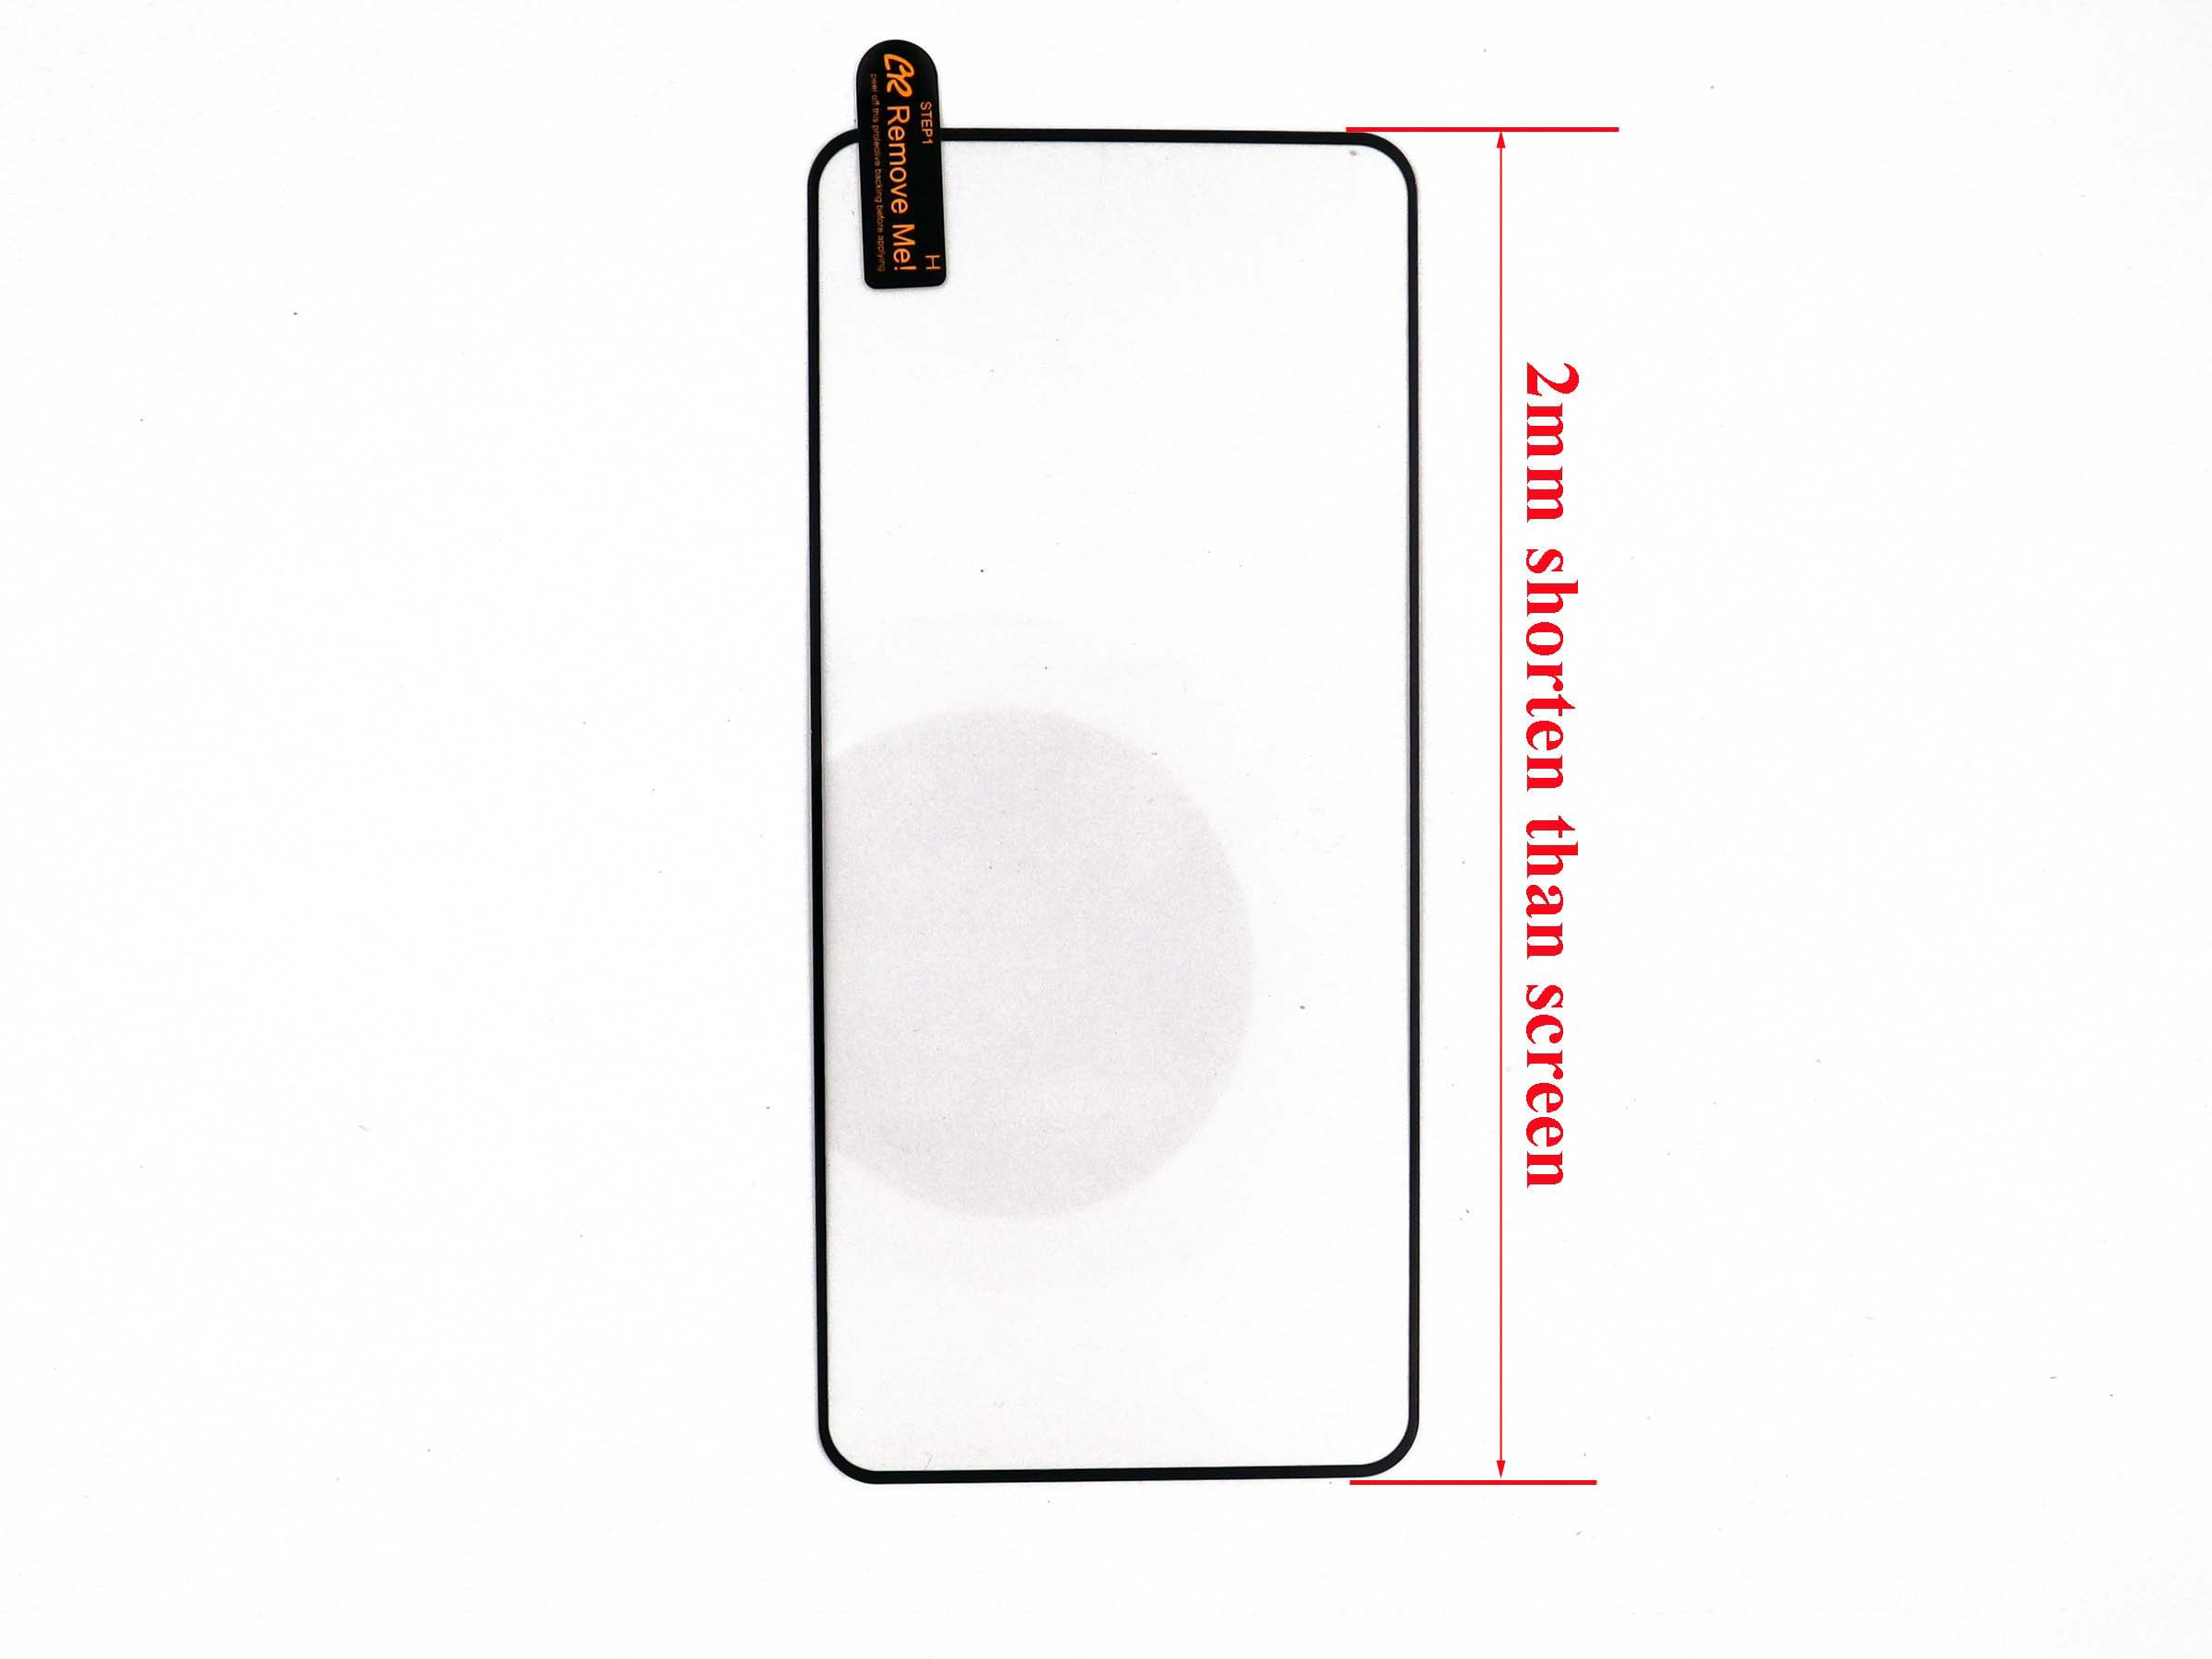 Top and Bottom Glass Cover for iPhone 5 - white & black